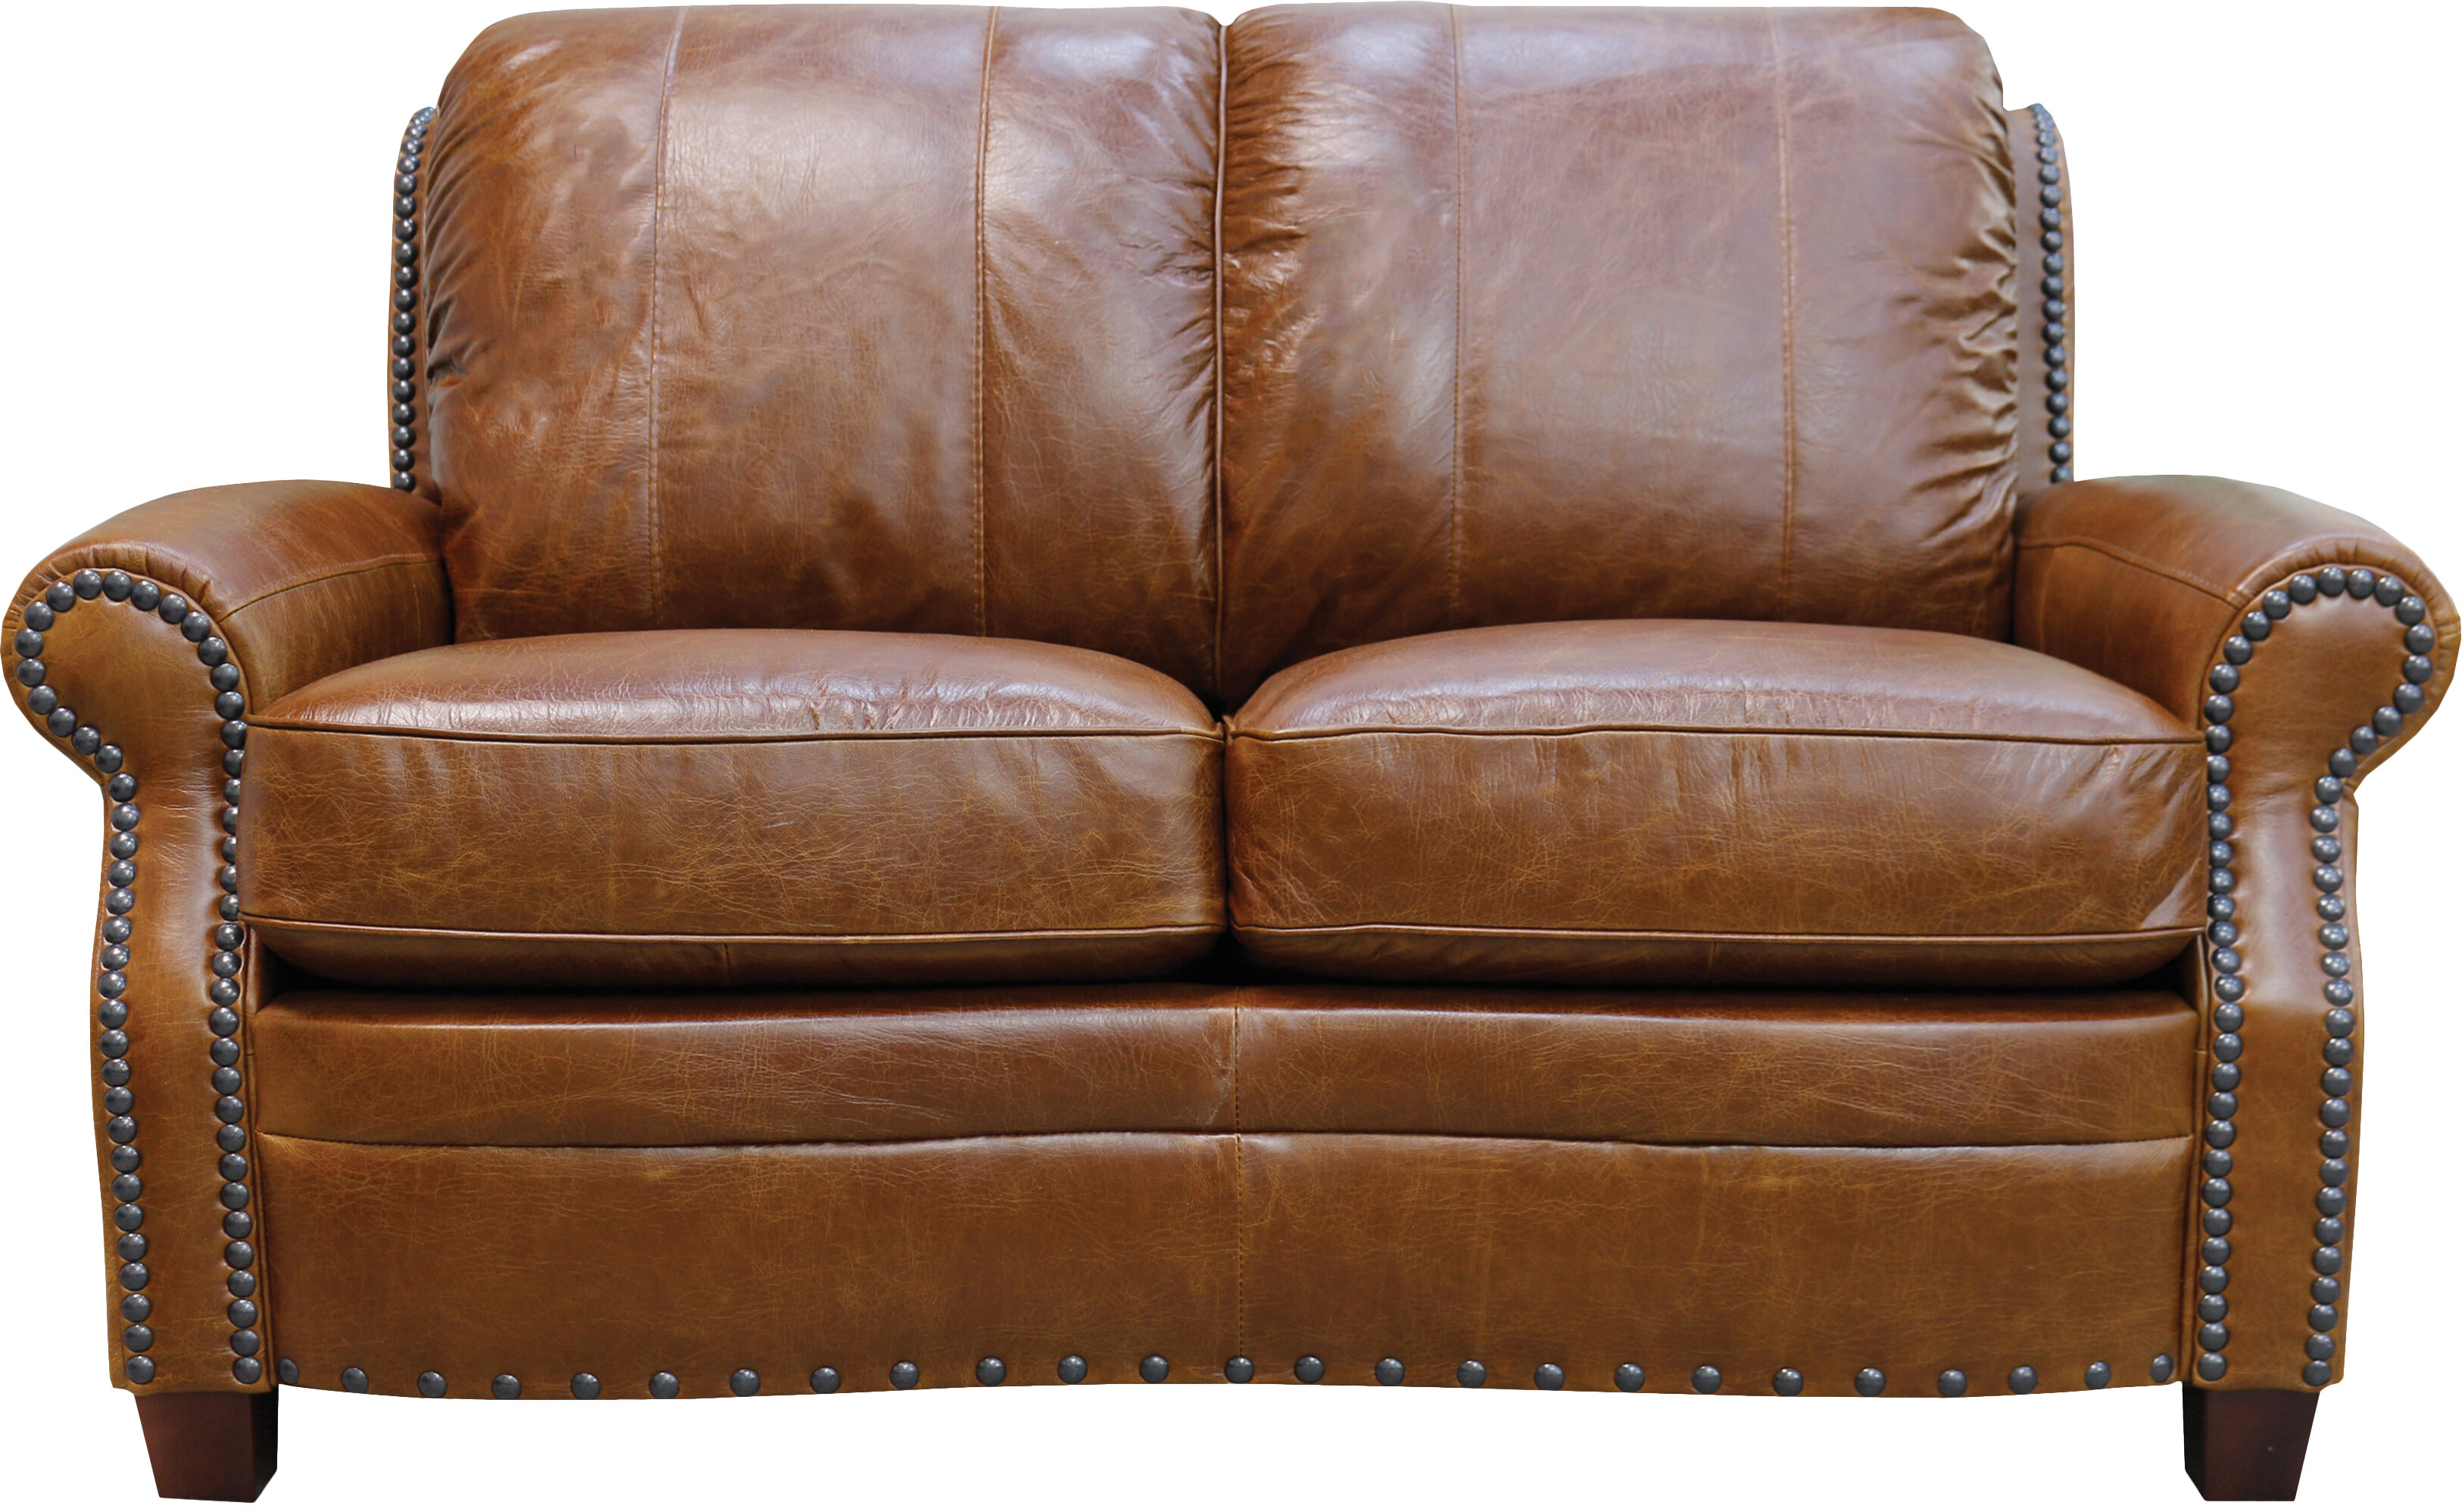 Sensational Halliburton Leather Loveseat Onthecornerstone Fun Painted Chair Ideas Images Onthecornerstoneorg